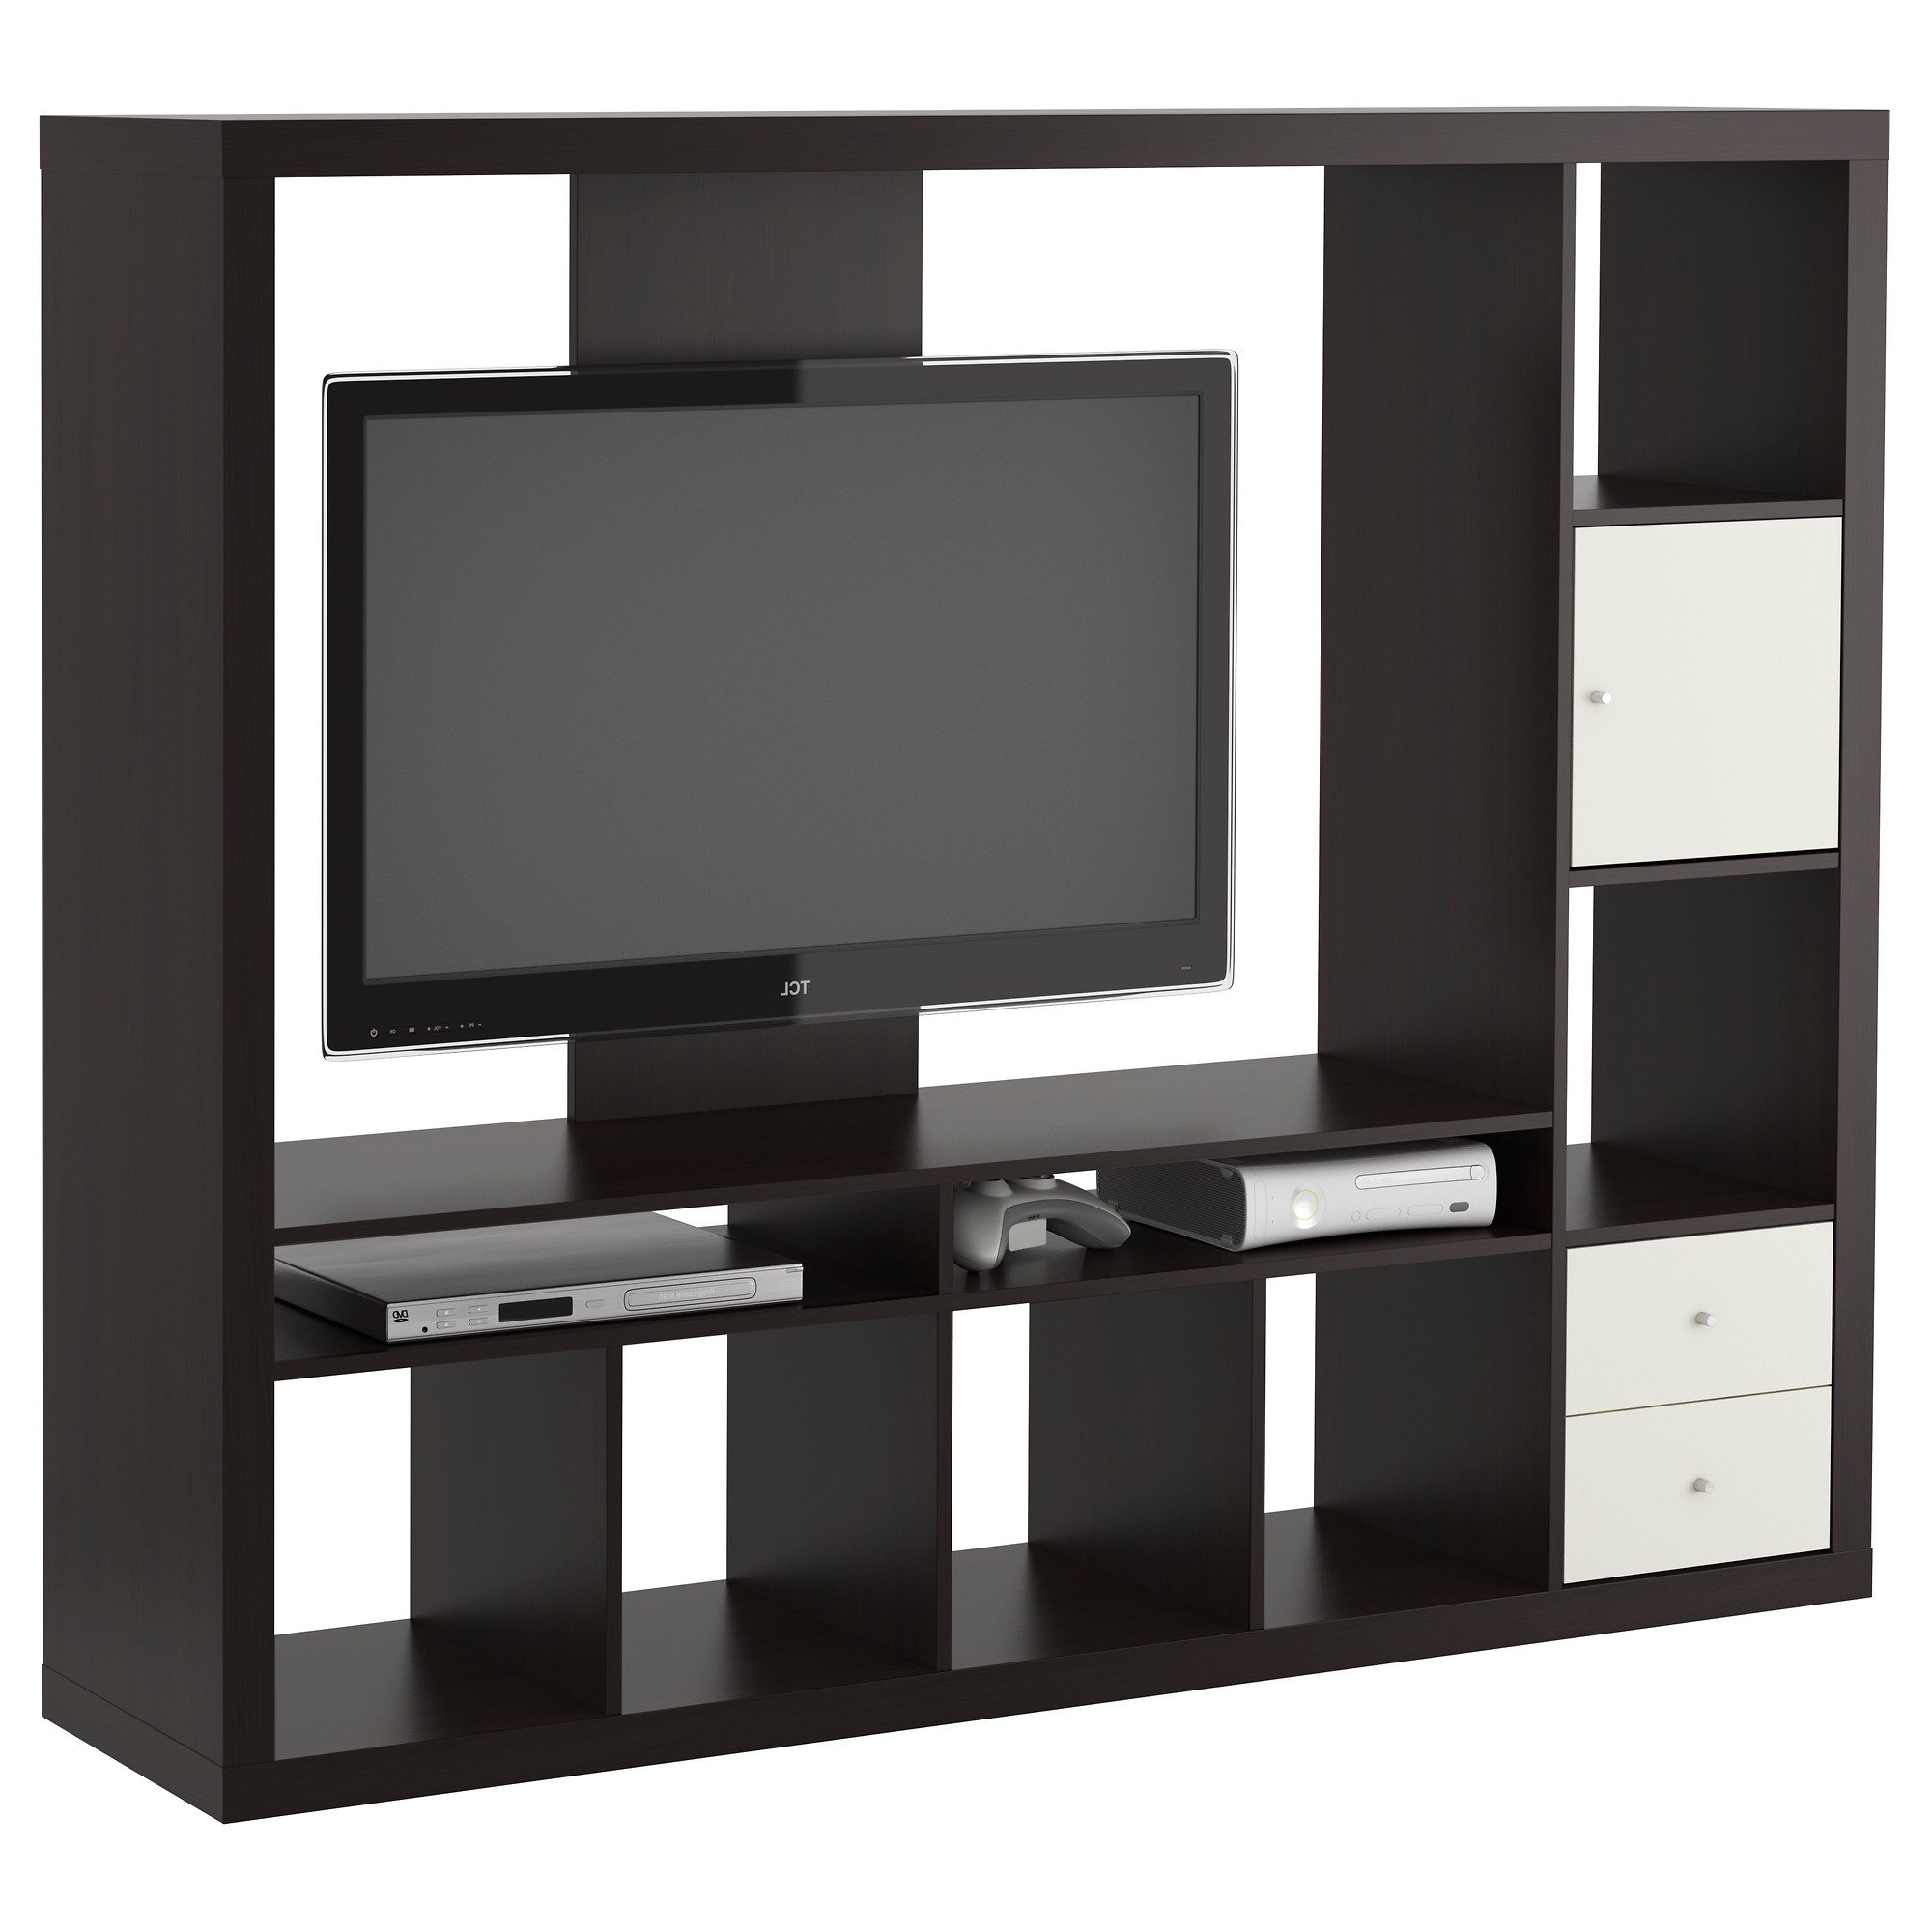 Current Exquisite Ikea Tv Stands Together With Storages Led Tv Plus Square Within Tv Cabinets With Storage (View 18 of 20)